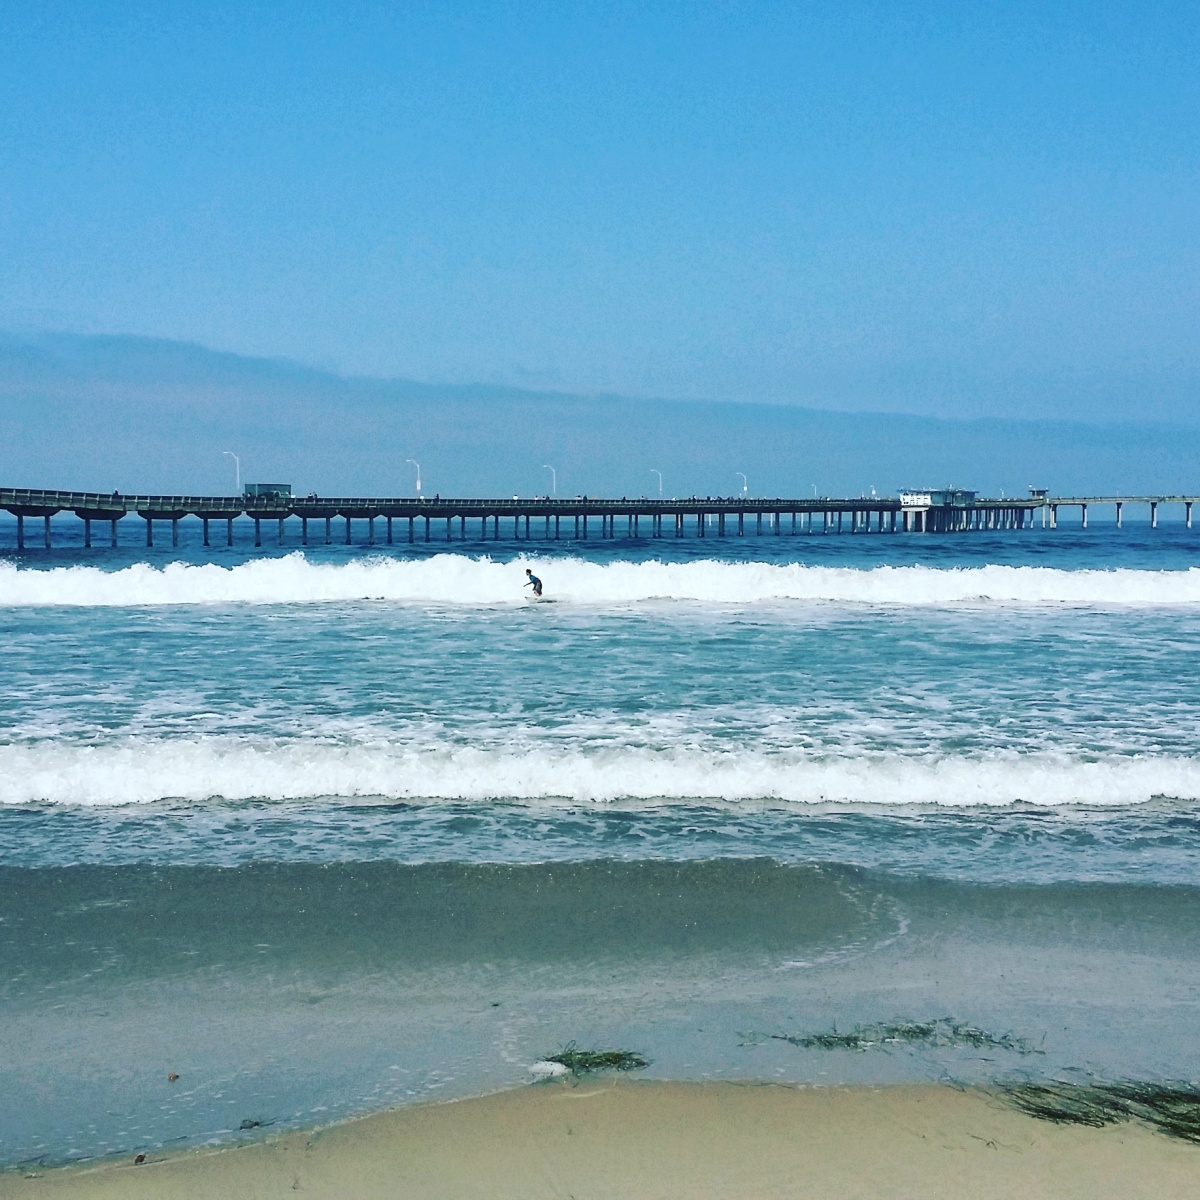 San Diego House Rentals On The Beach: Top 5 Places To Visit In Ocean Beach, San Diego